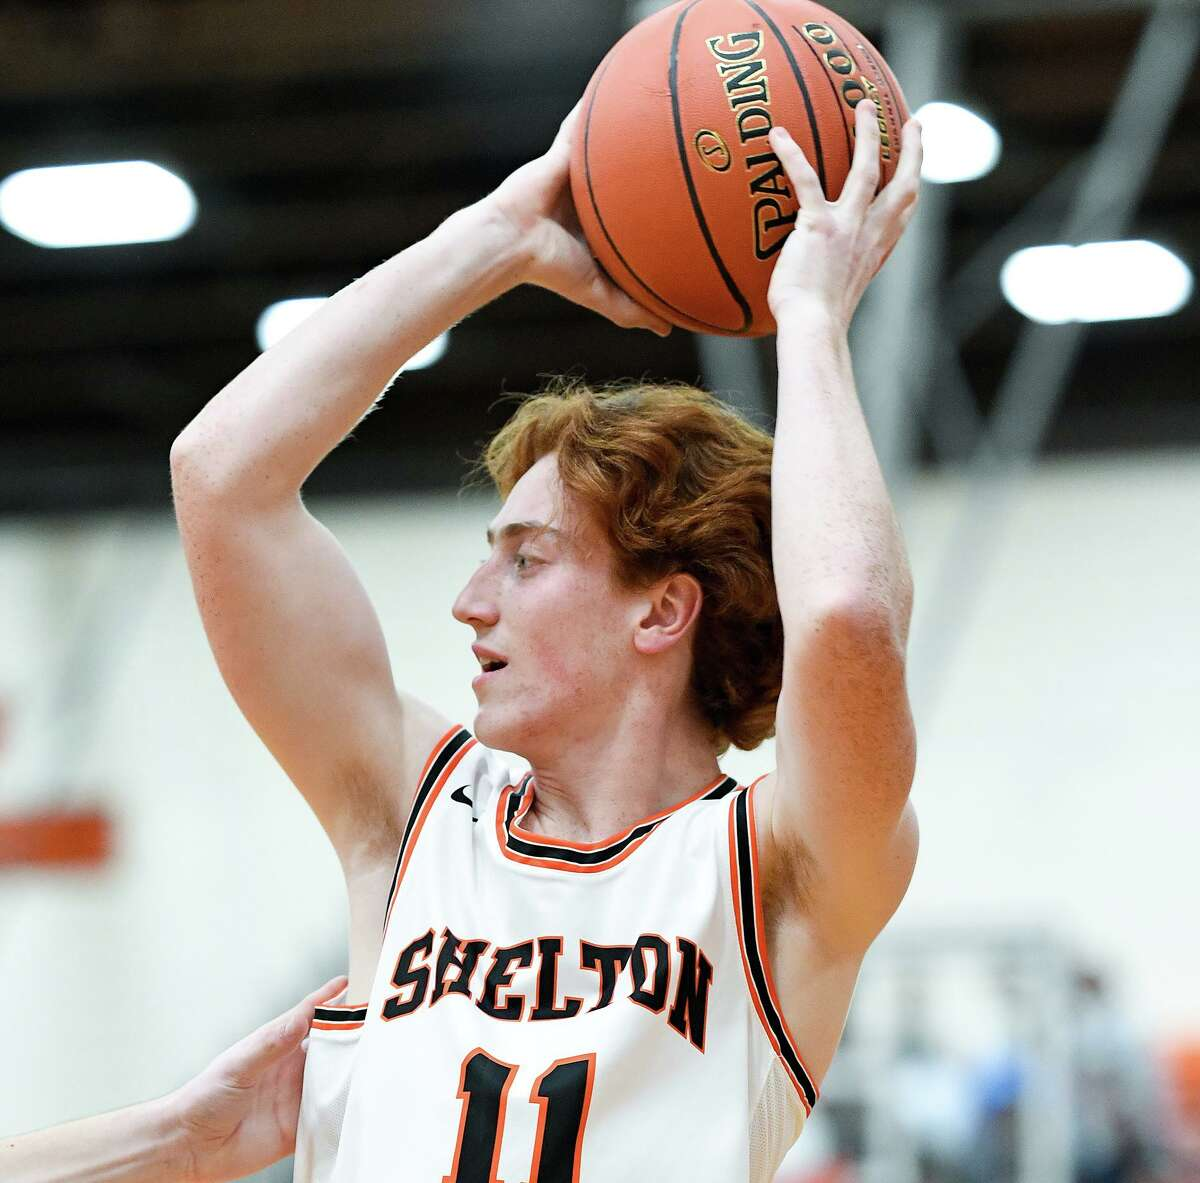 Mike Callinan made a pair of plays down the stretch to give Shelton a victory.